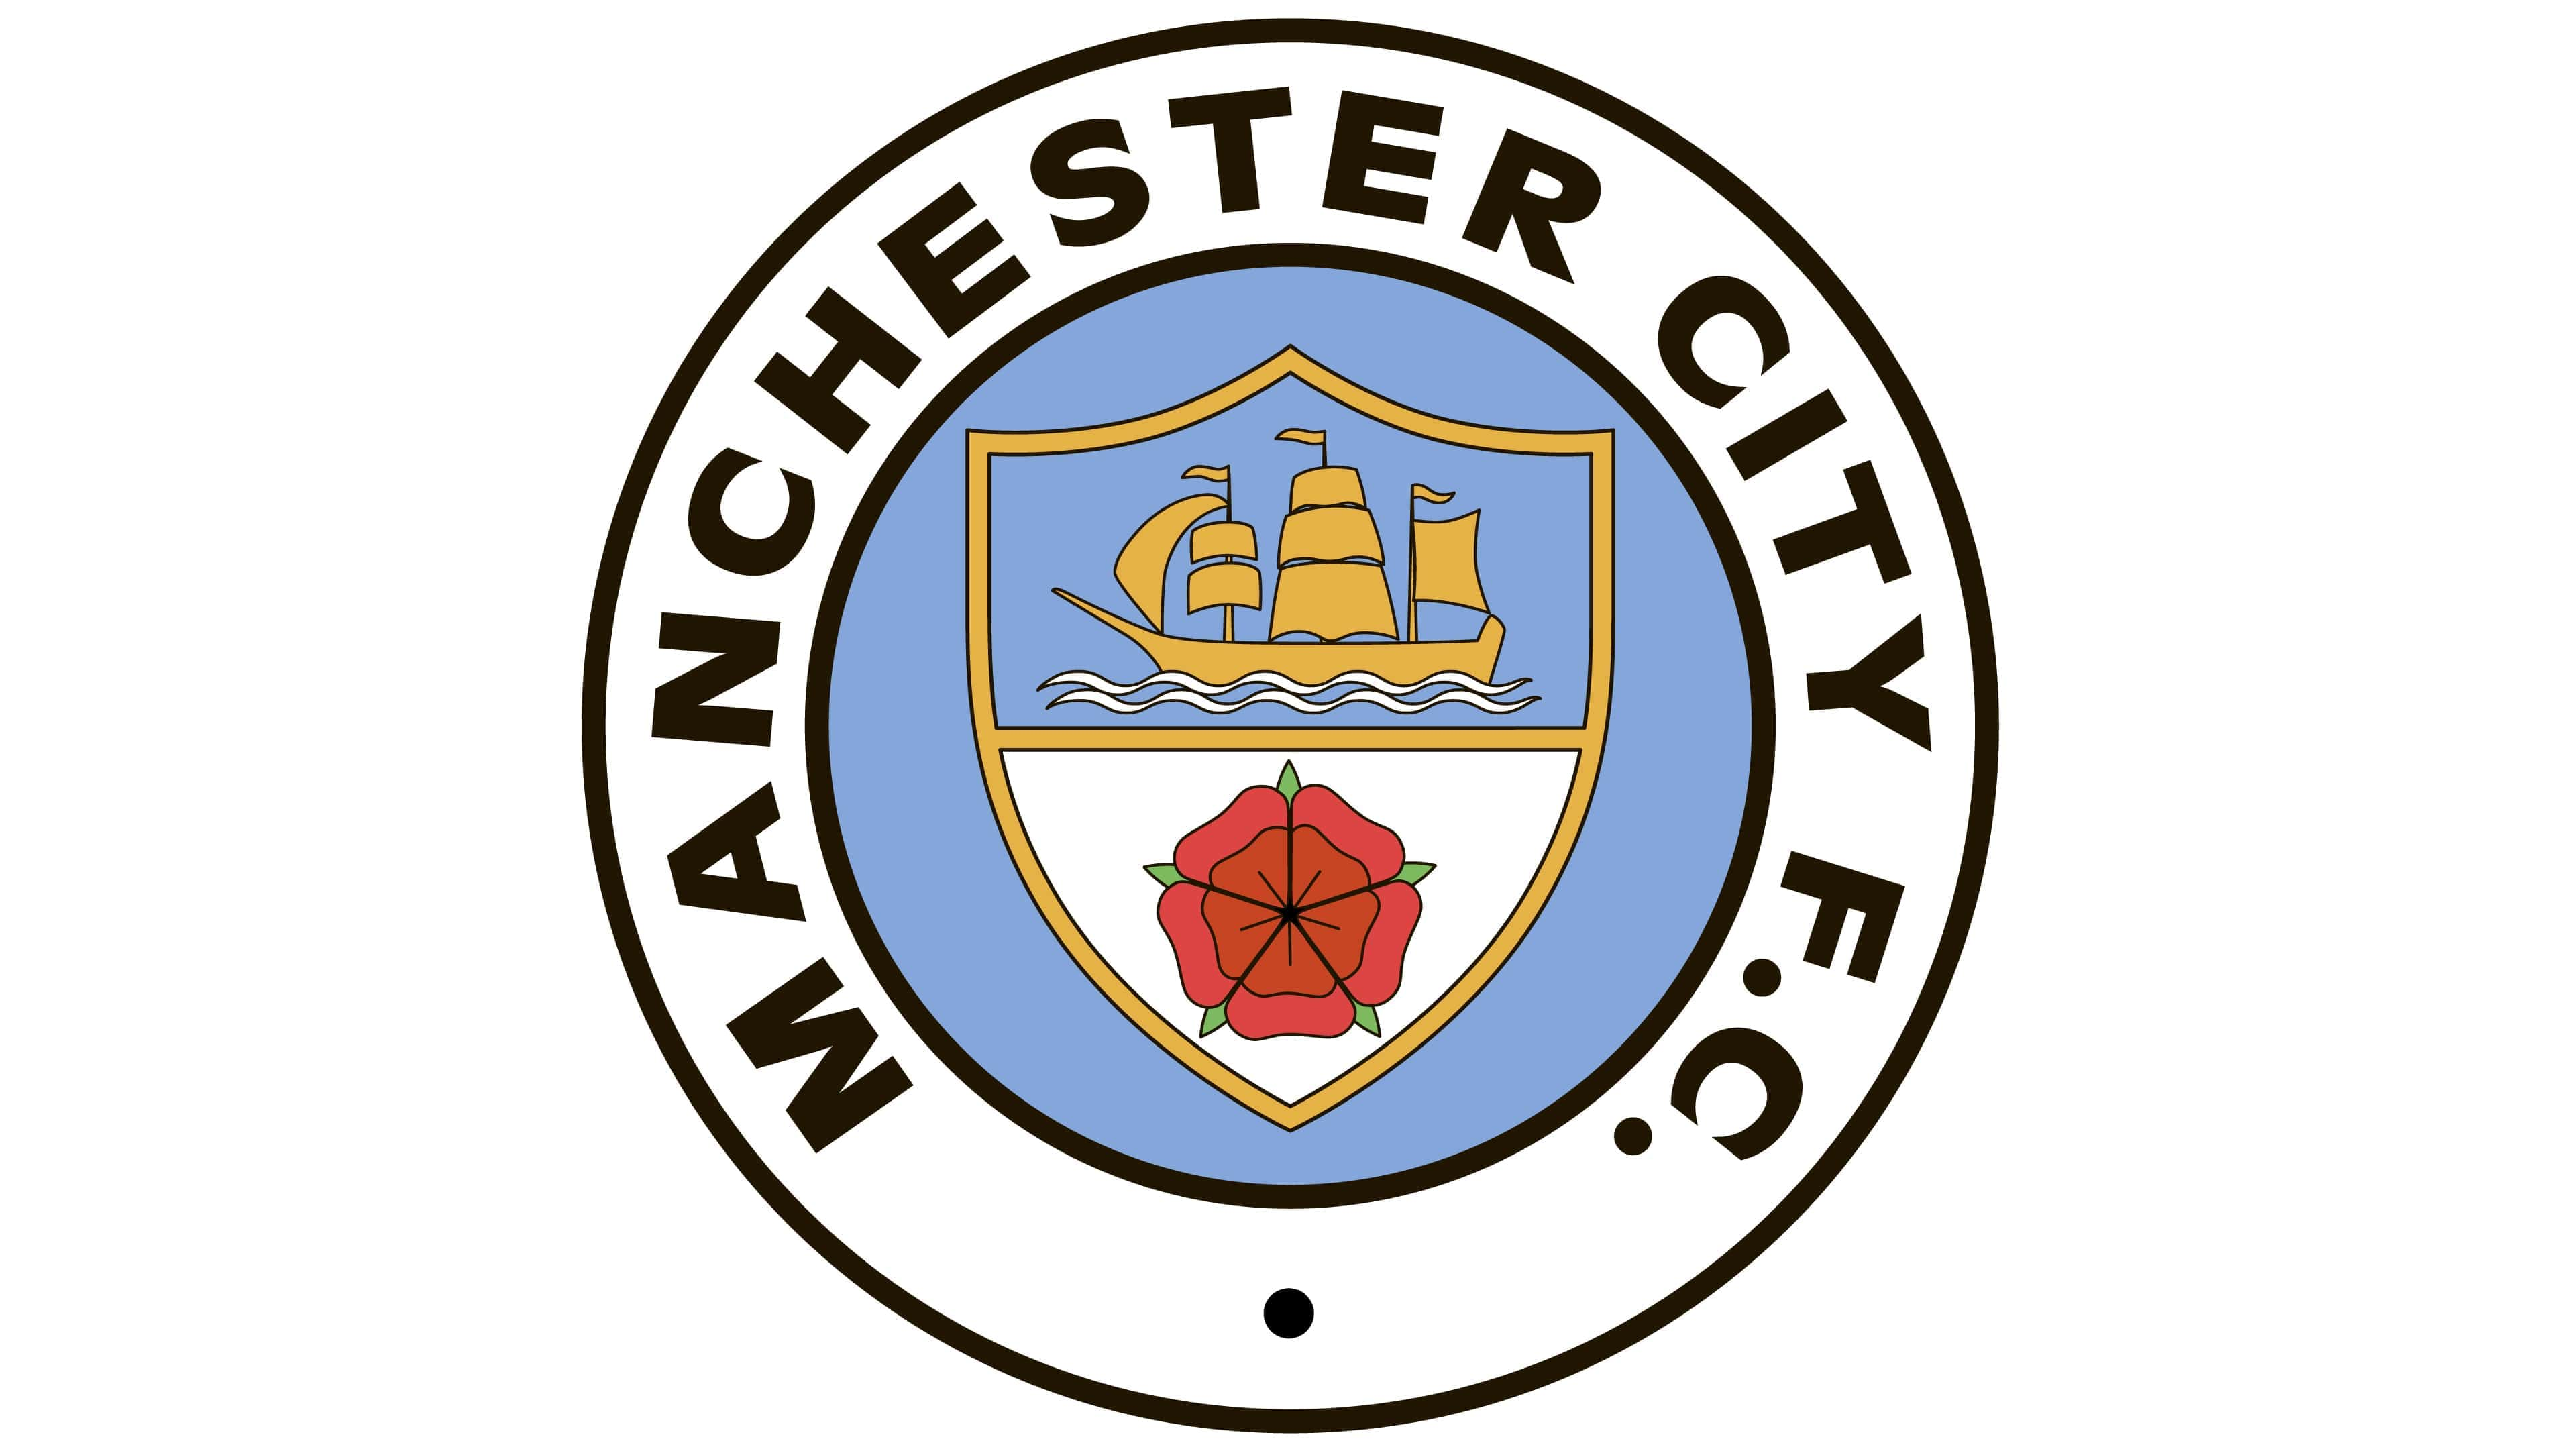 Manchester City Logo The Most Famous Brands And Company Logos In The World